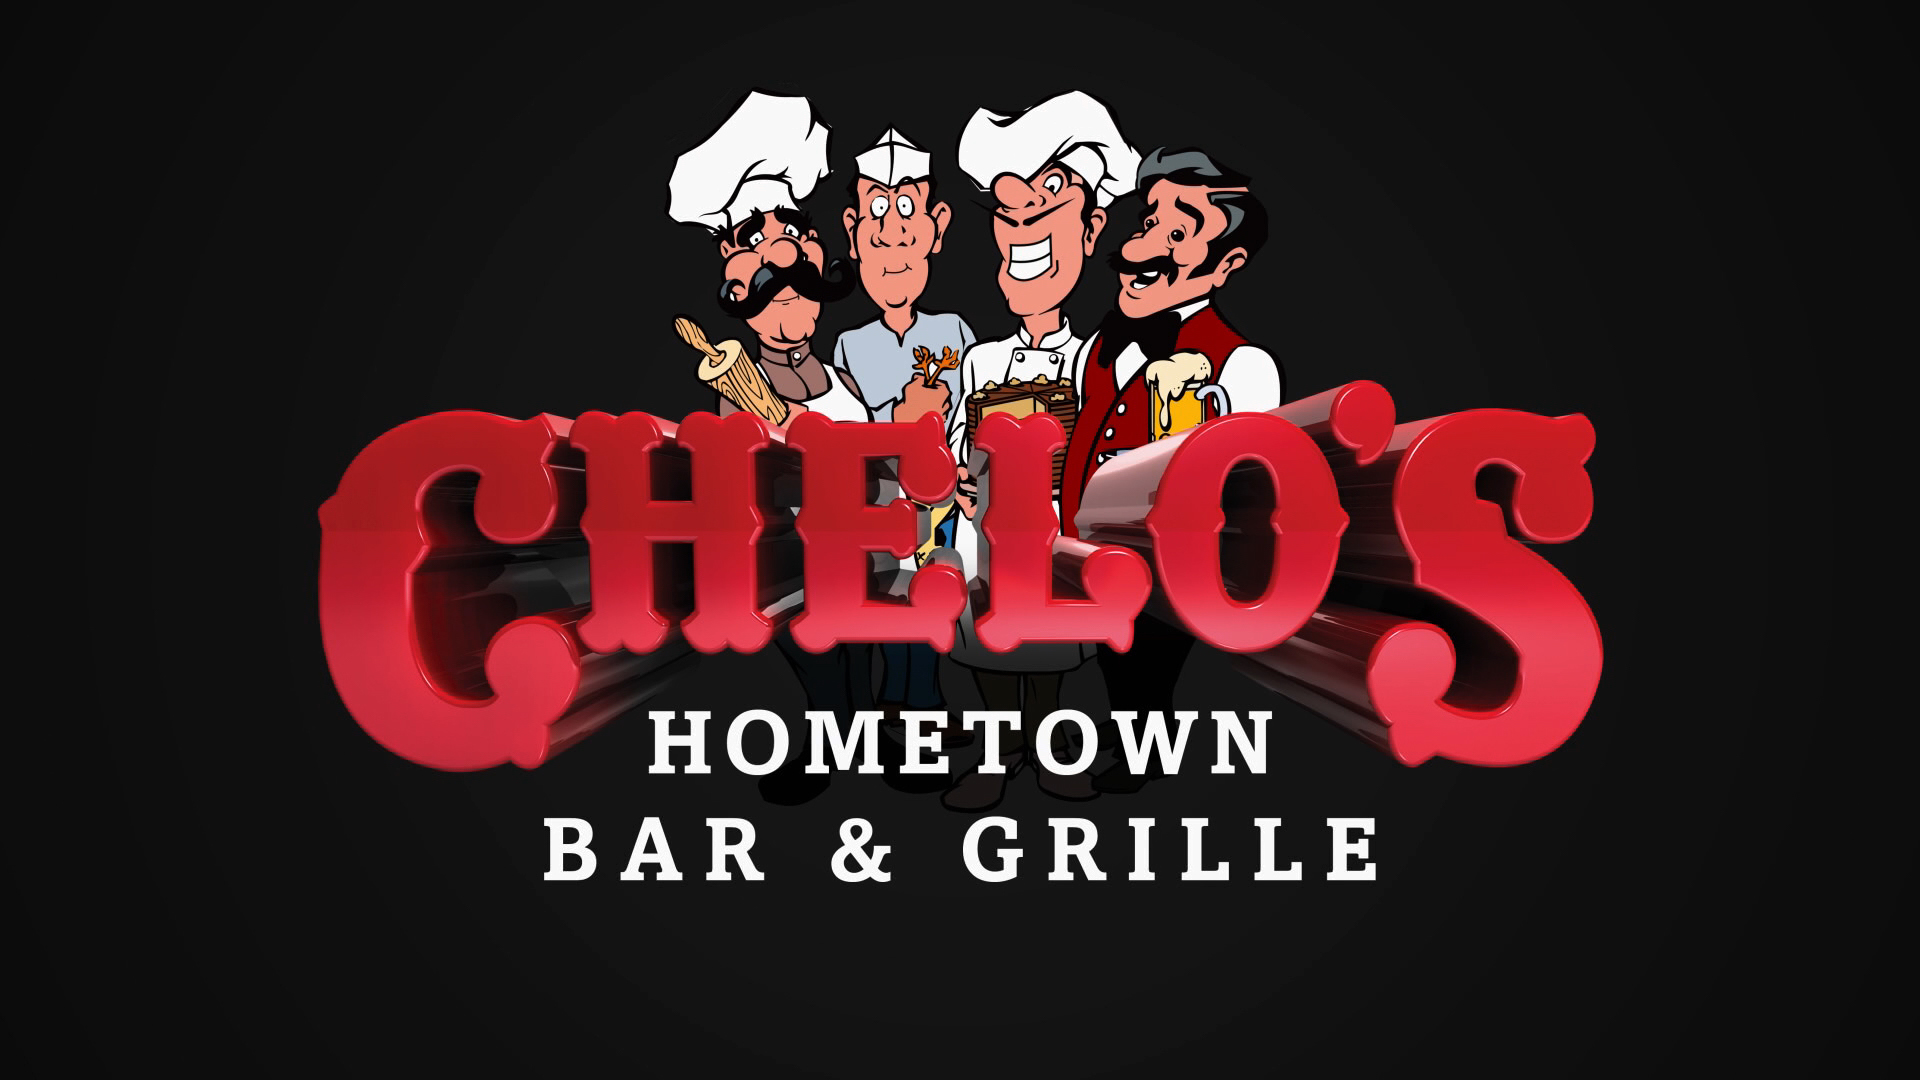 Customer Profile: Chelo's Hometown Bar & Grille at a Glance